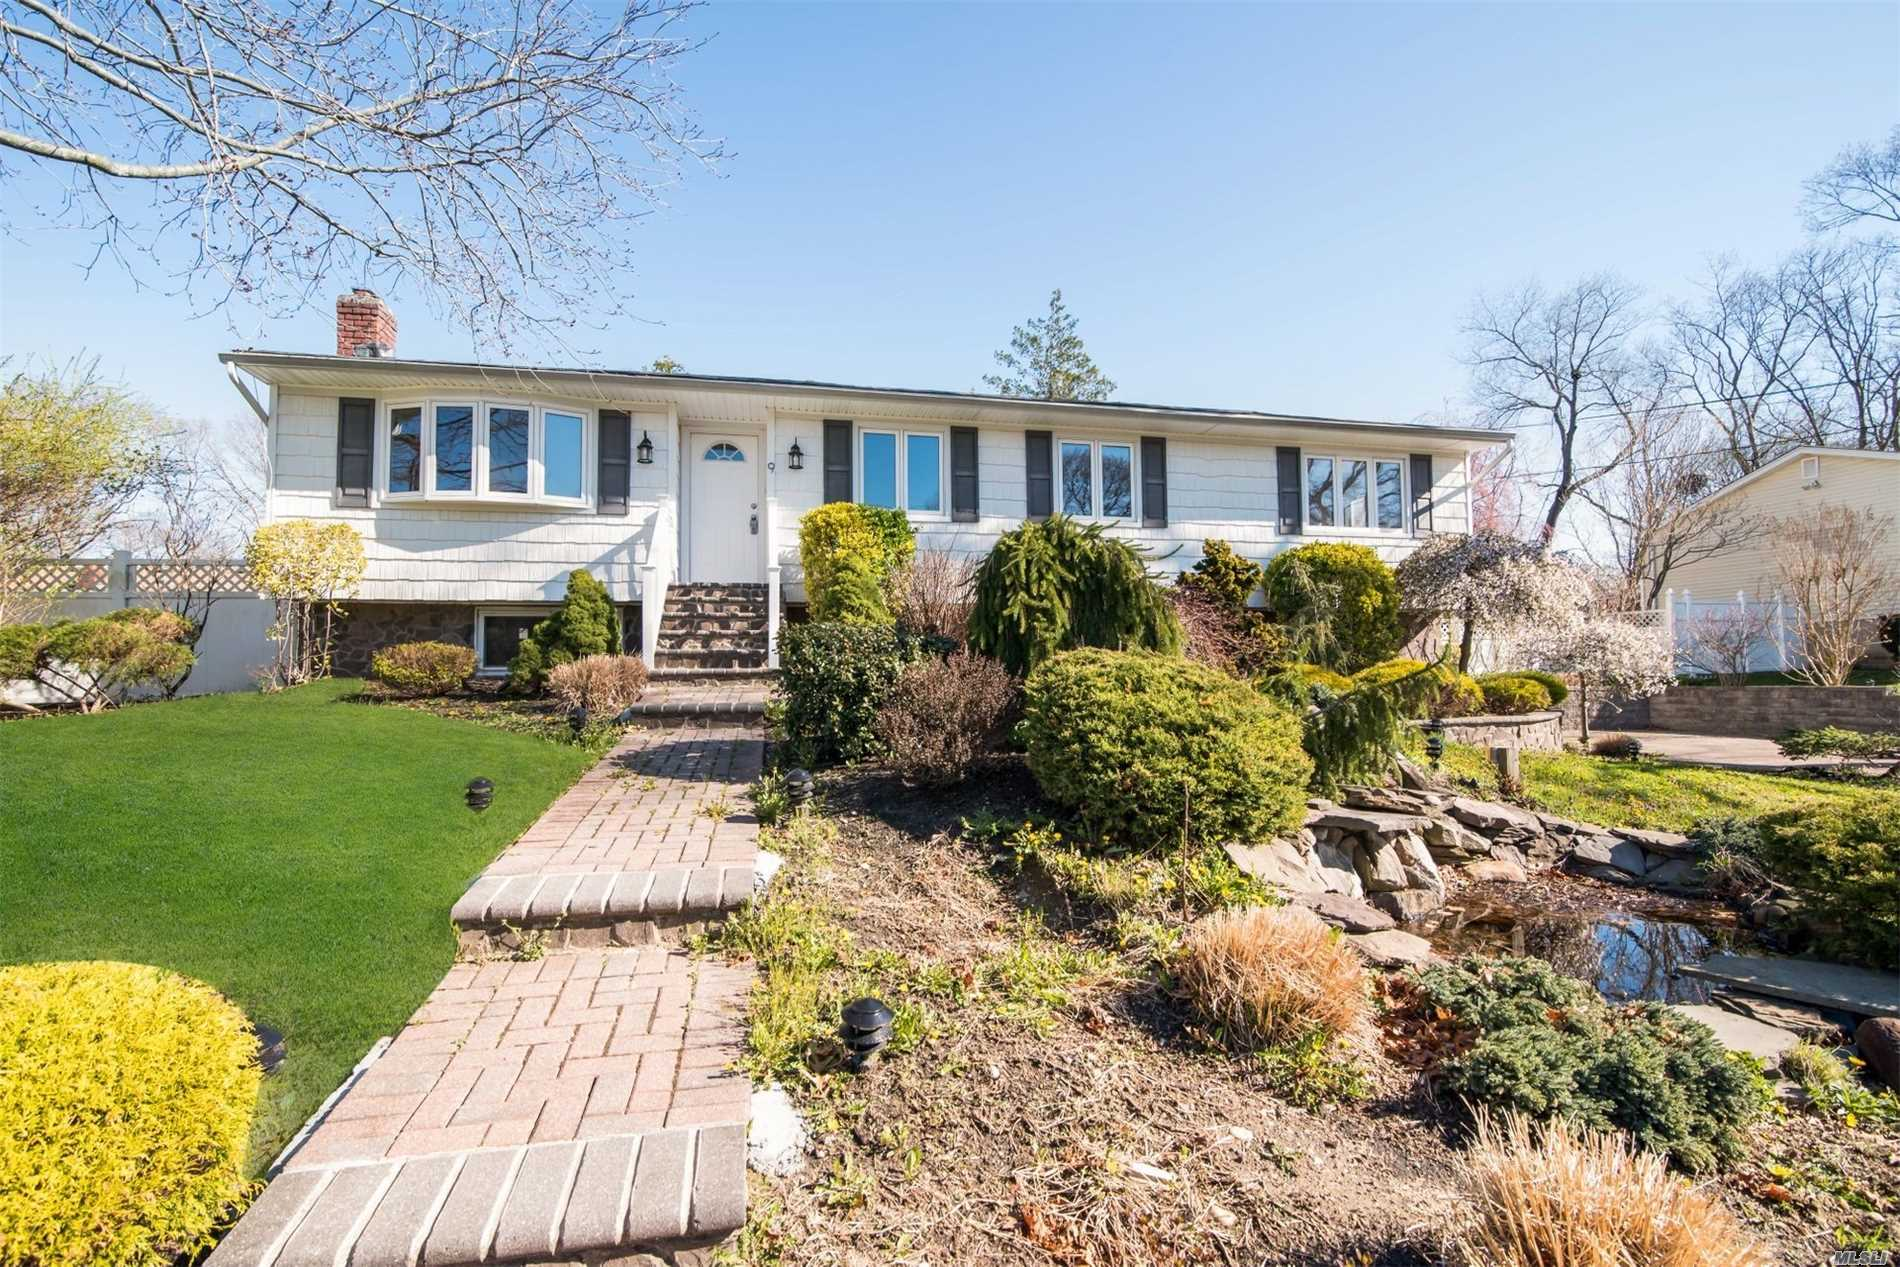 Photo of home for sale at 9 Starr St, Pt.Jefferson Sta NY